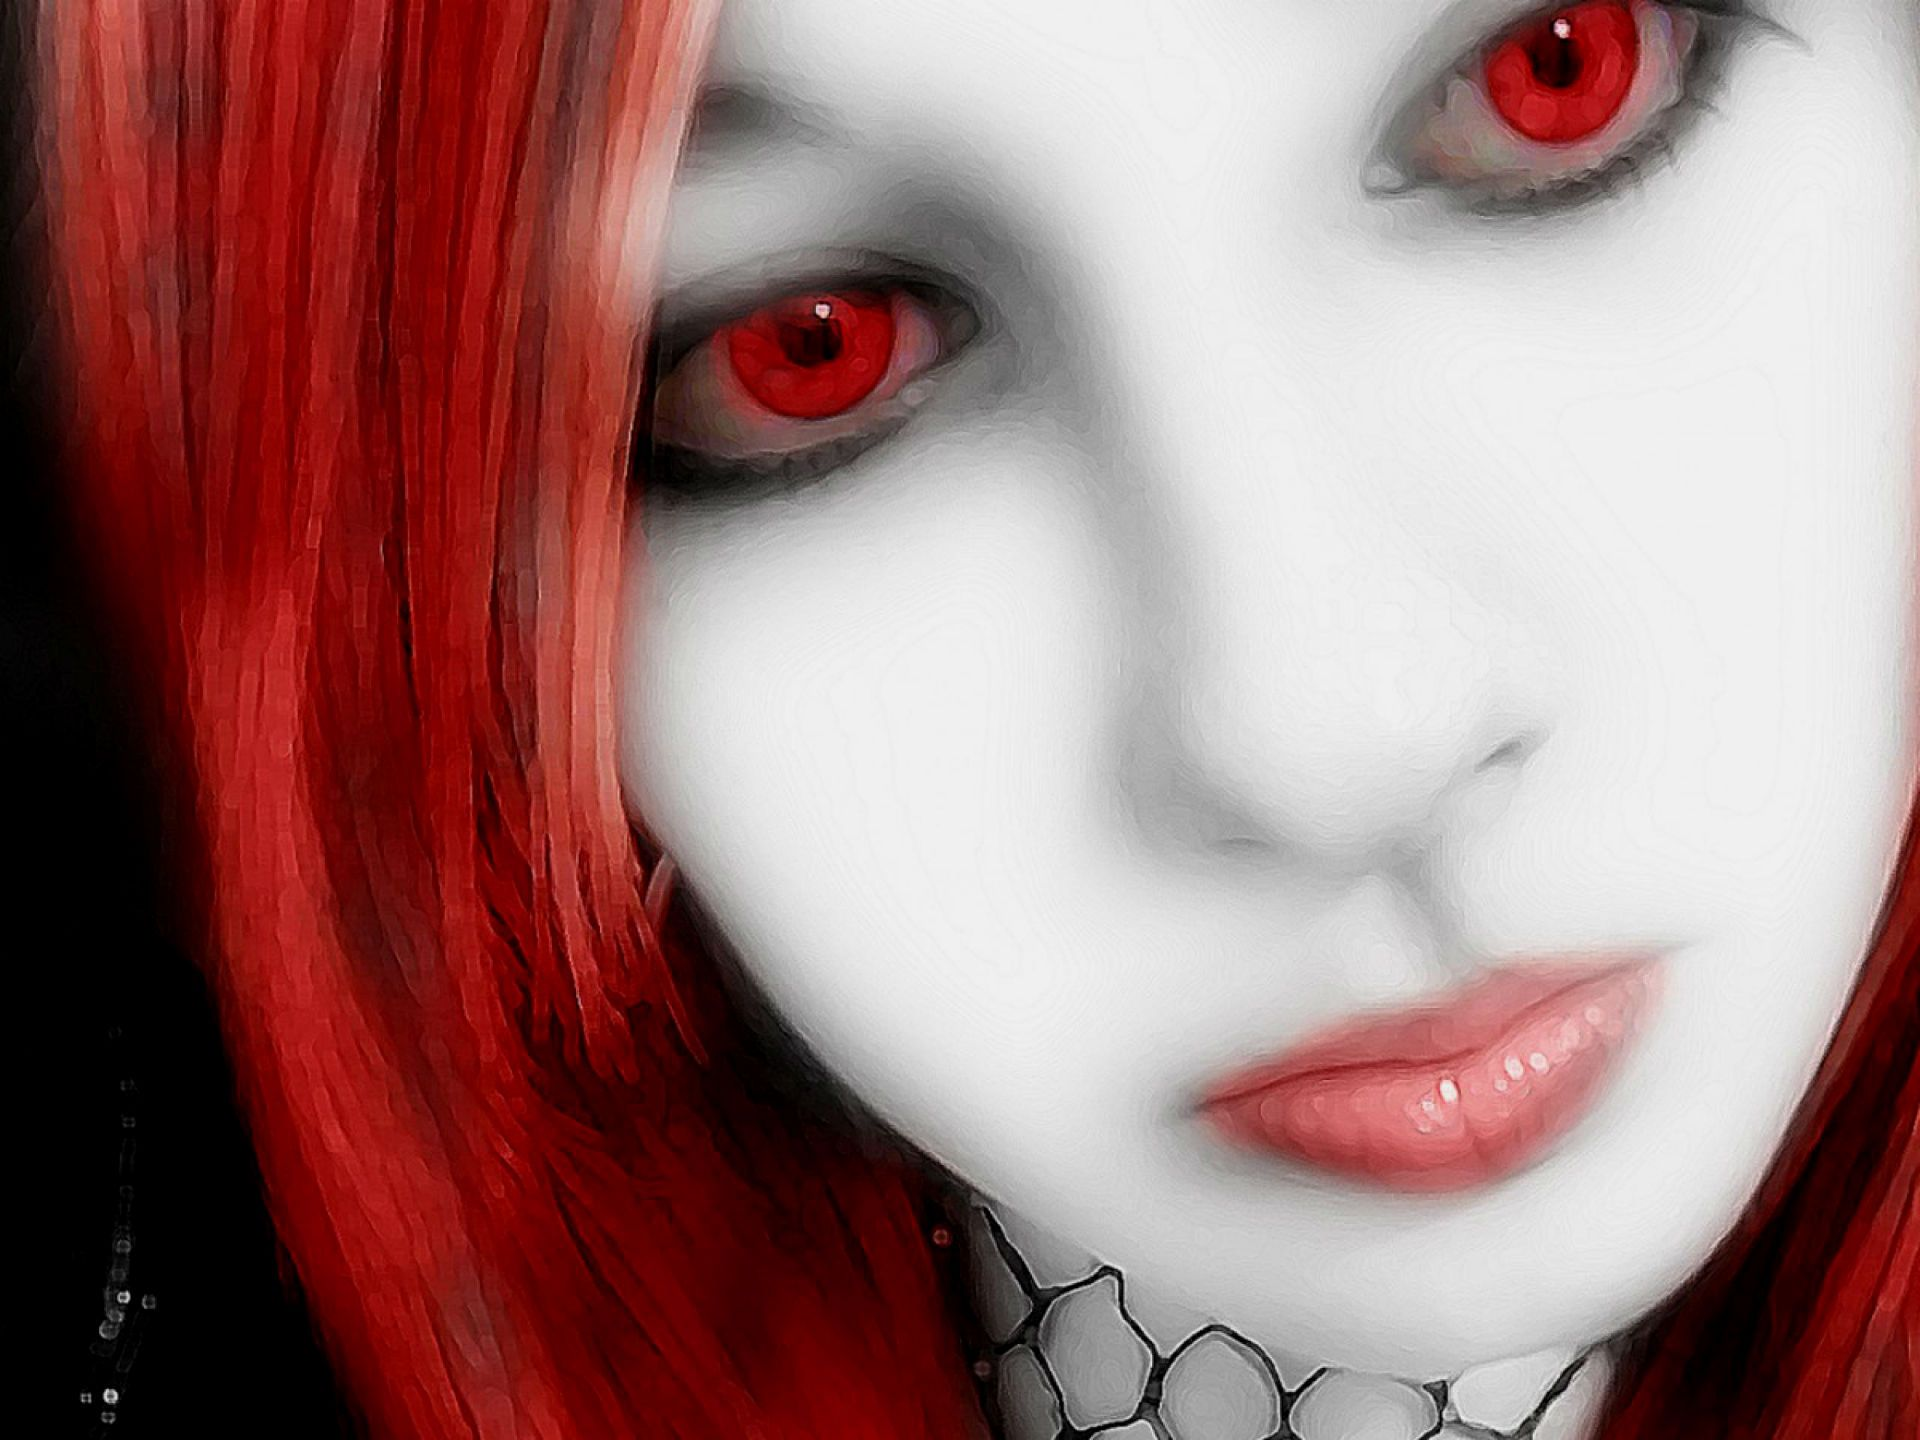 Vampire Wallpaper 1920x1440 45574 Cool Vampire Wallpapers Vampire Halloween Face Makeup